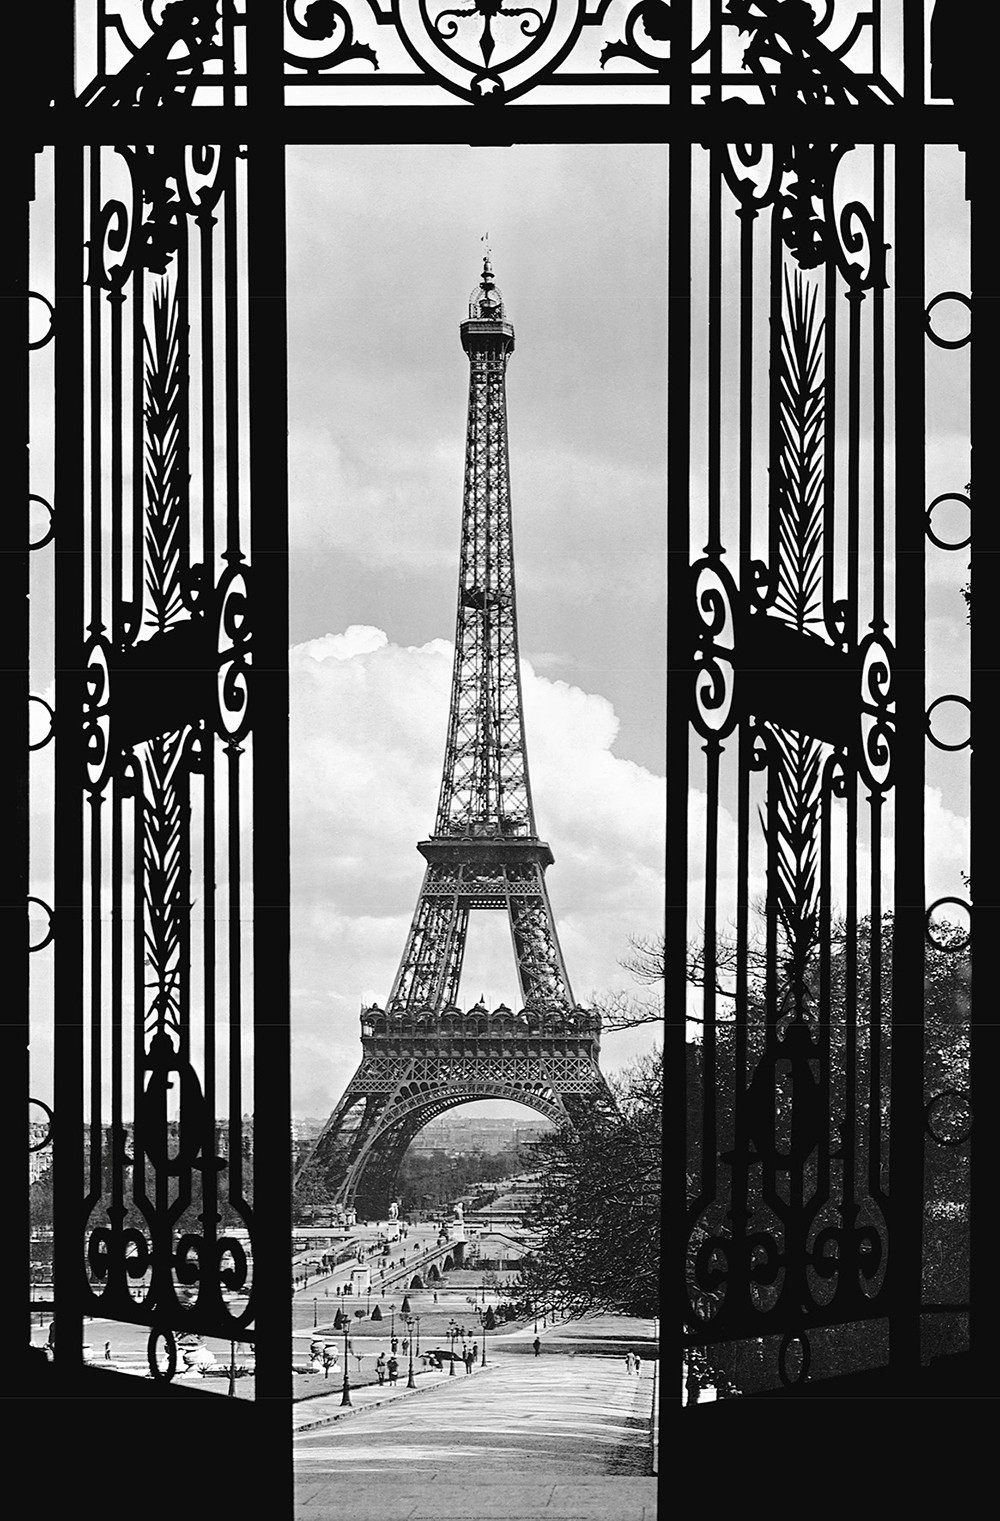 Juliste Giant Art 00644 La Tour Eiffel 115x175 cm